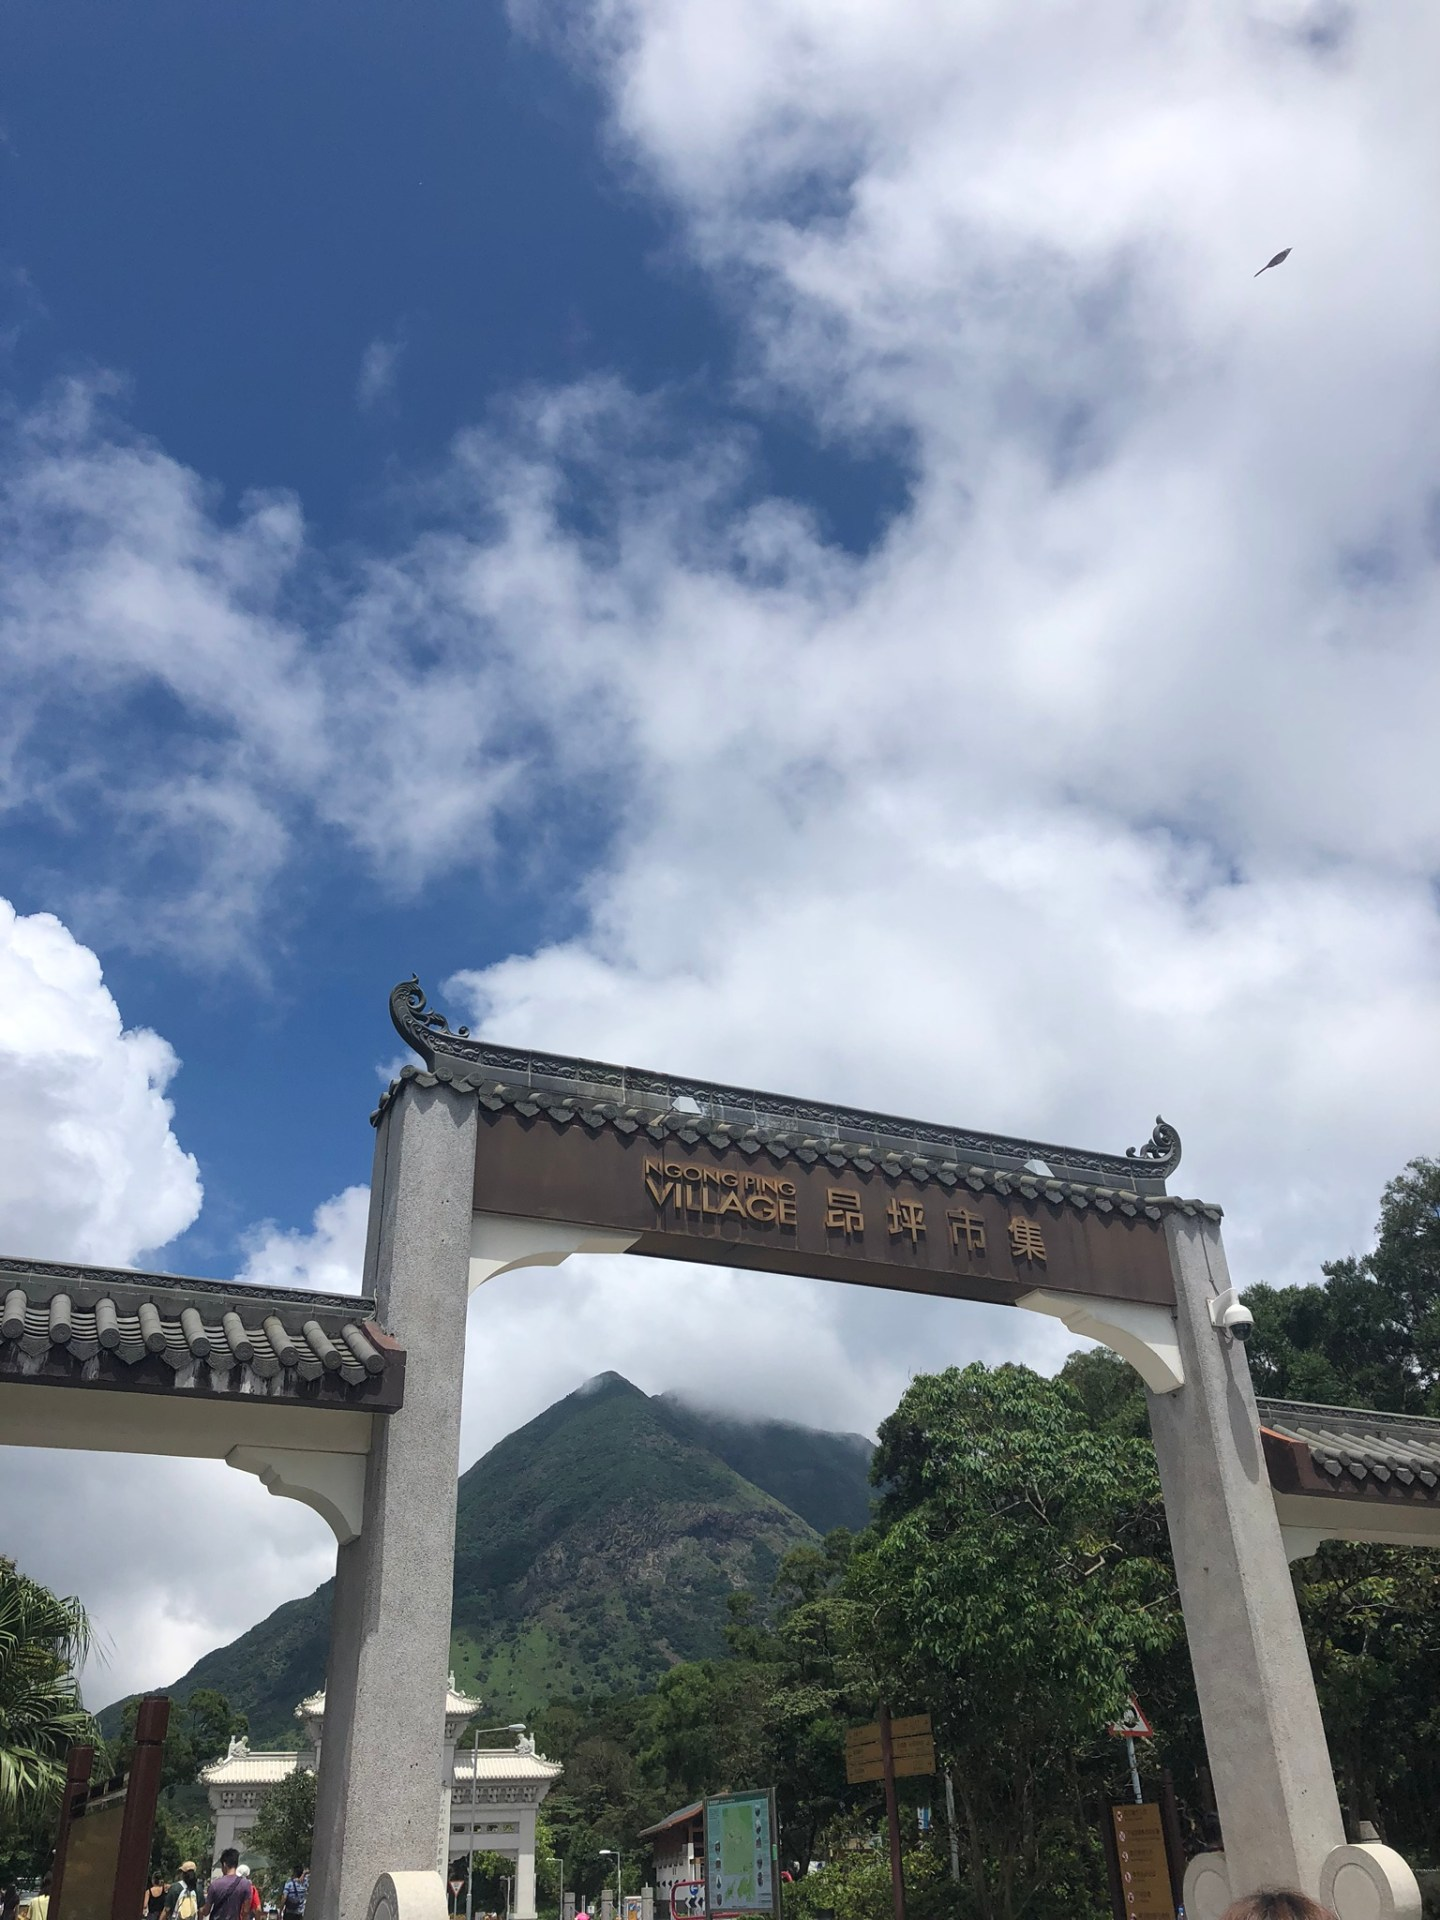 Friendship arch in Ngong Ping village, Lantau Island